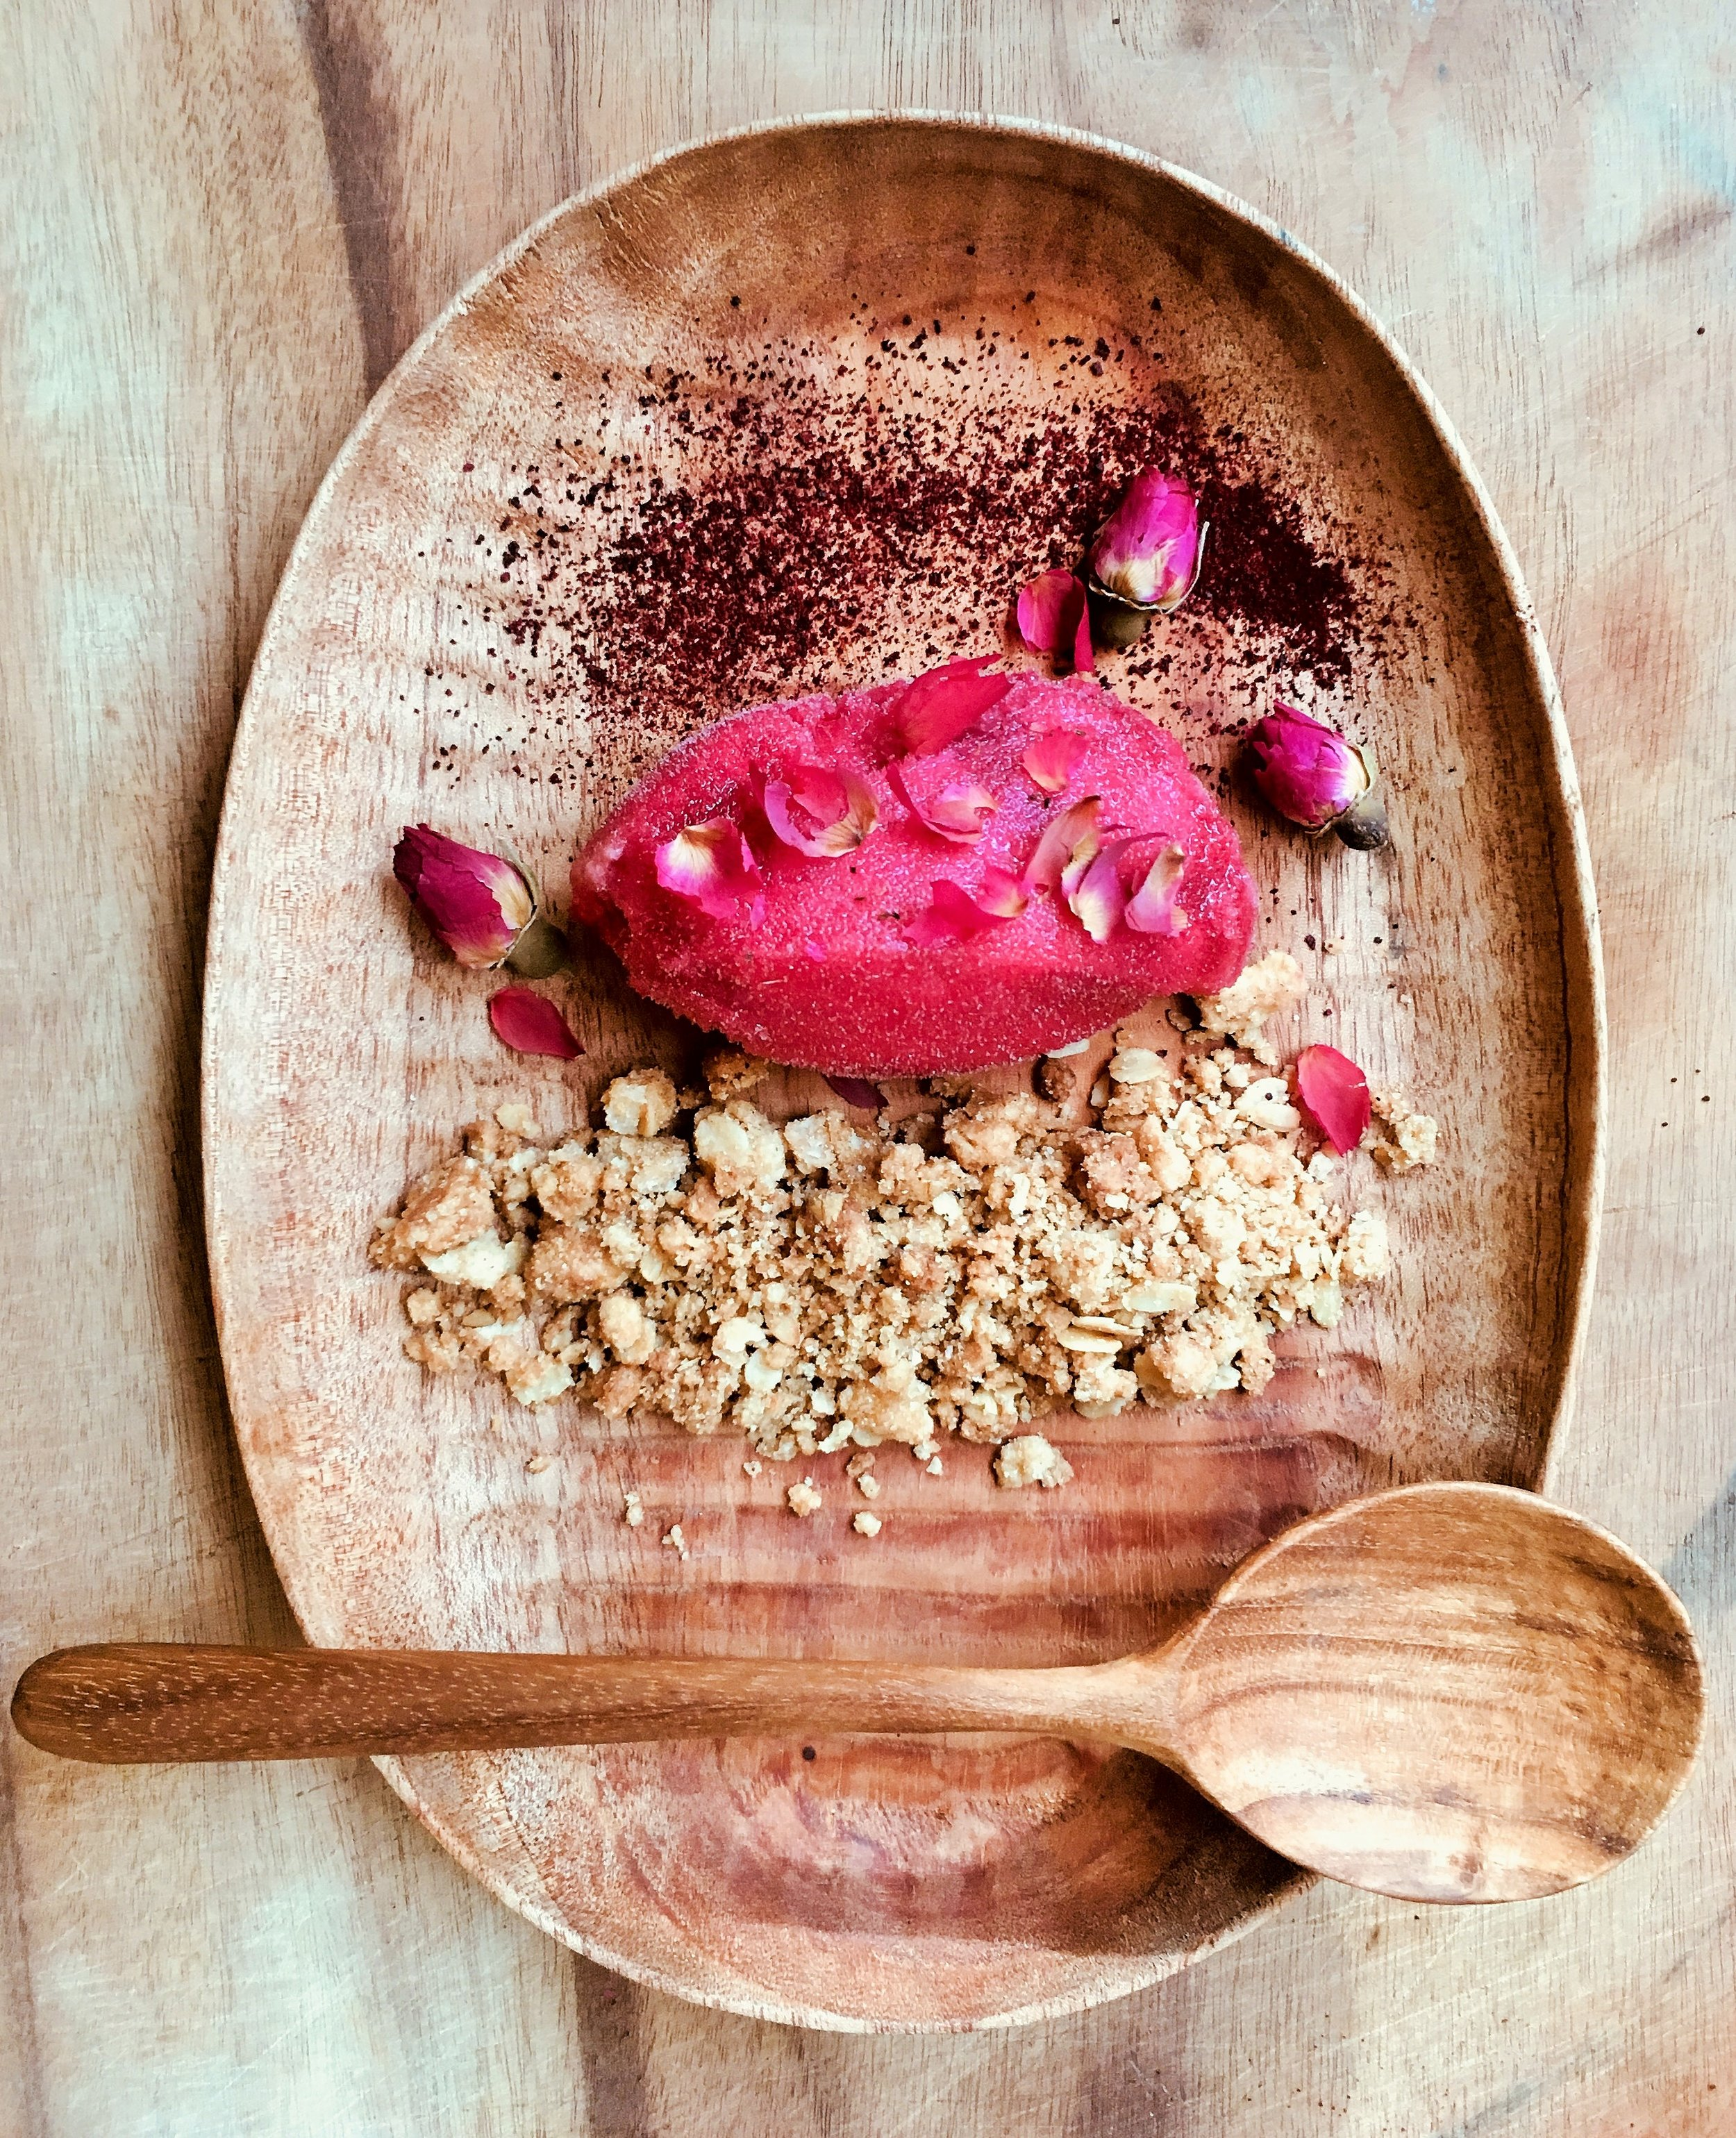 Davidson plum and rose sorbet w/ powdered sour plums and sweet cinnamon crumble